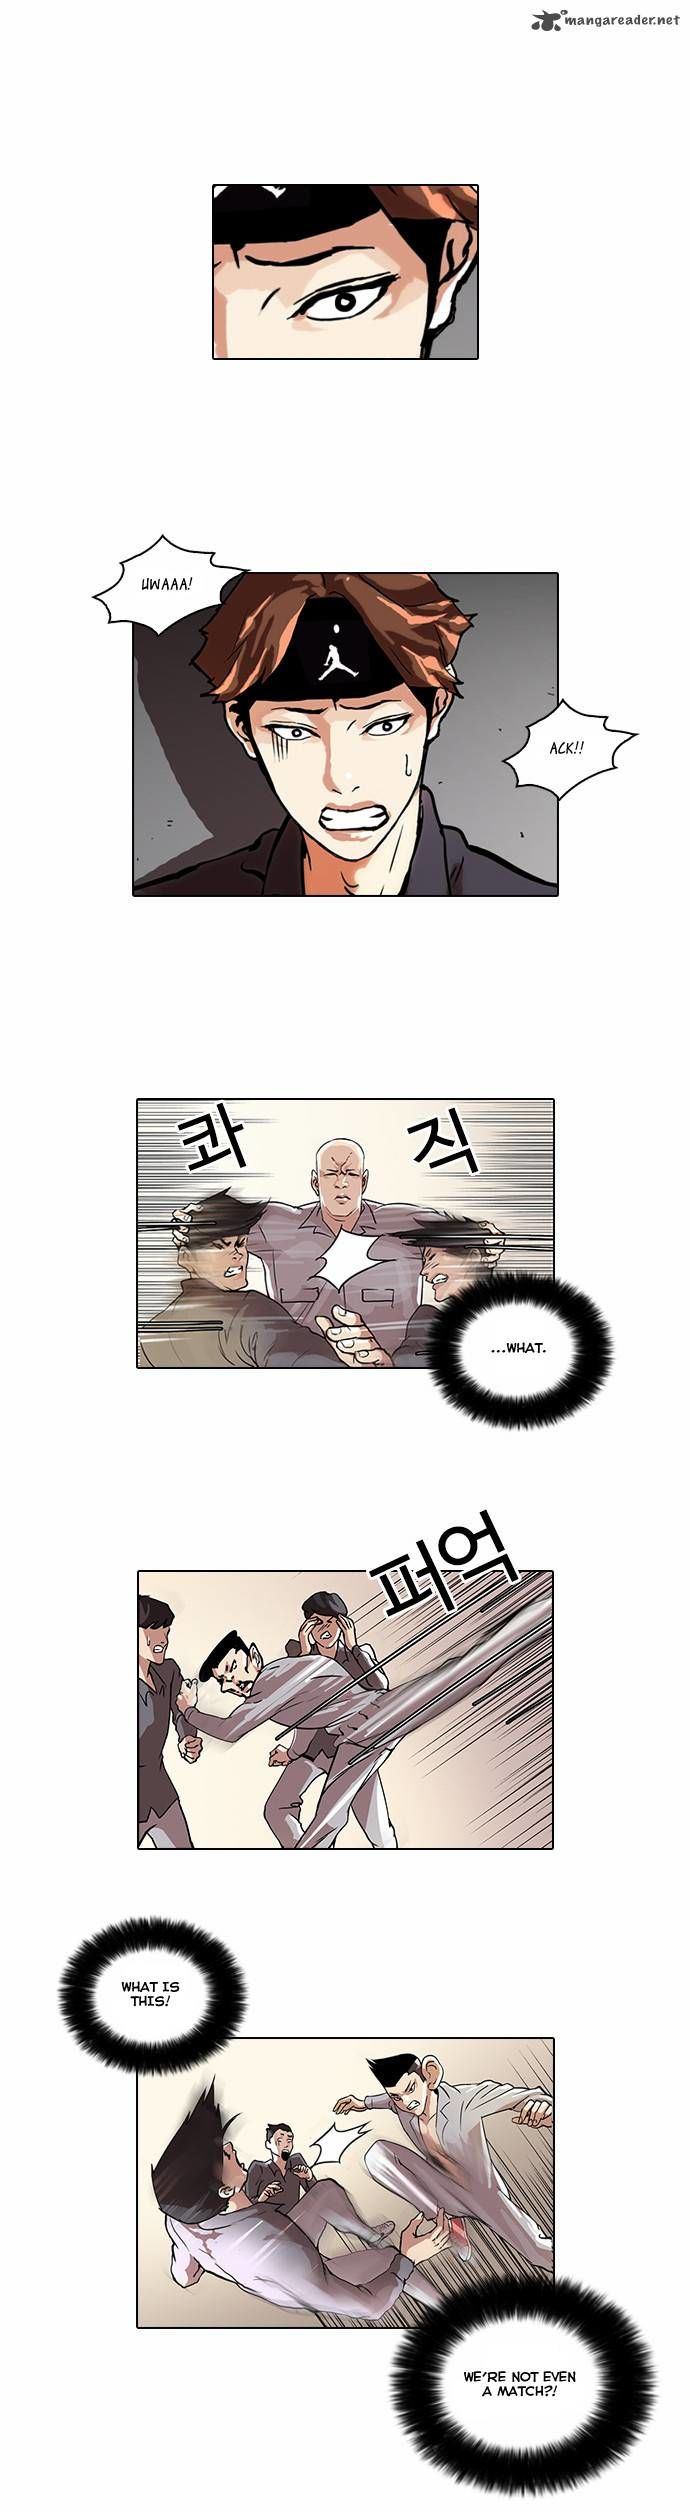 Lookism 38 Page 1